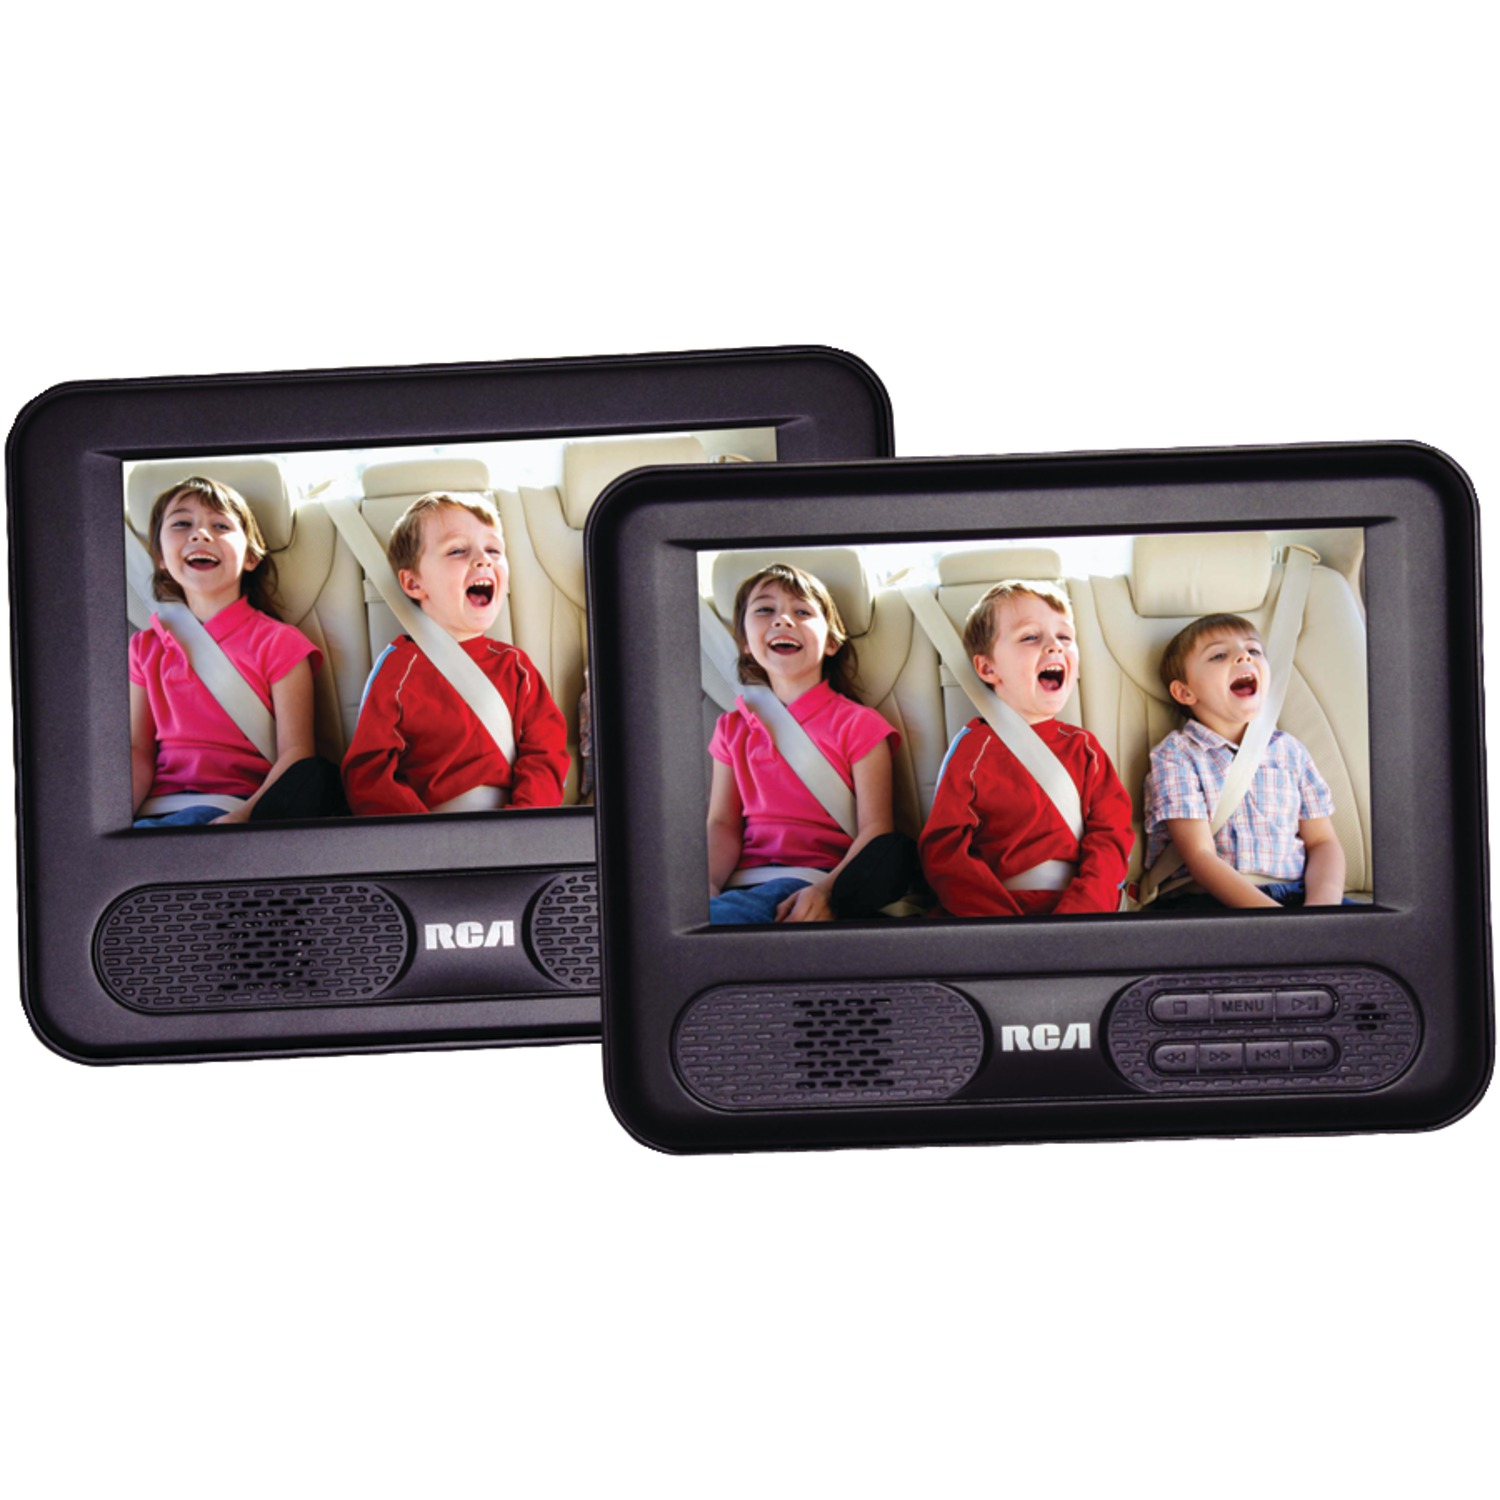 rca drc69707 7 inch mobile dvd player with additional 7. Black Bedroom Furniture Sets. Home Design Ideas